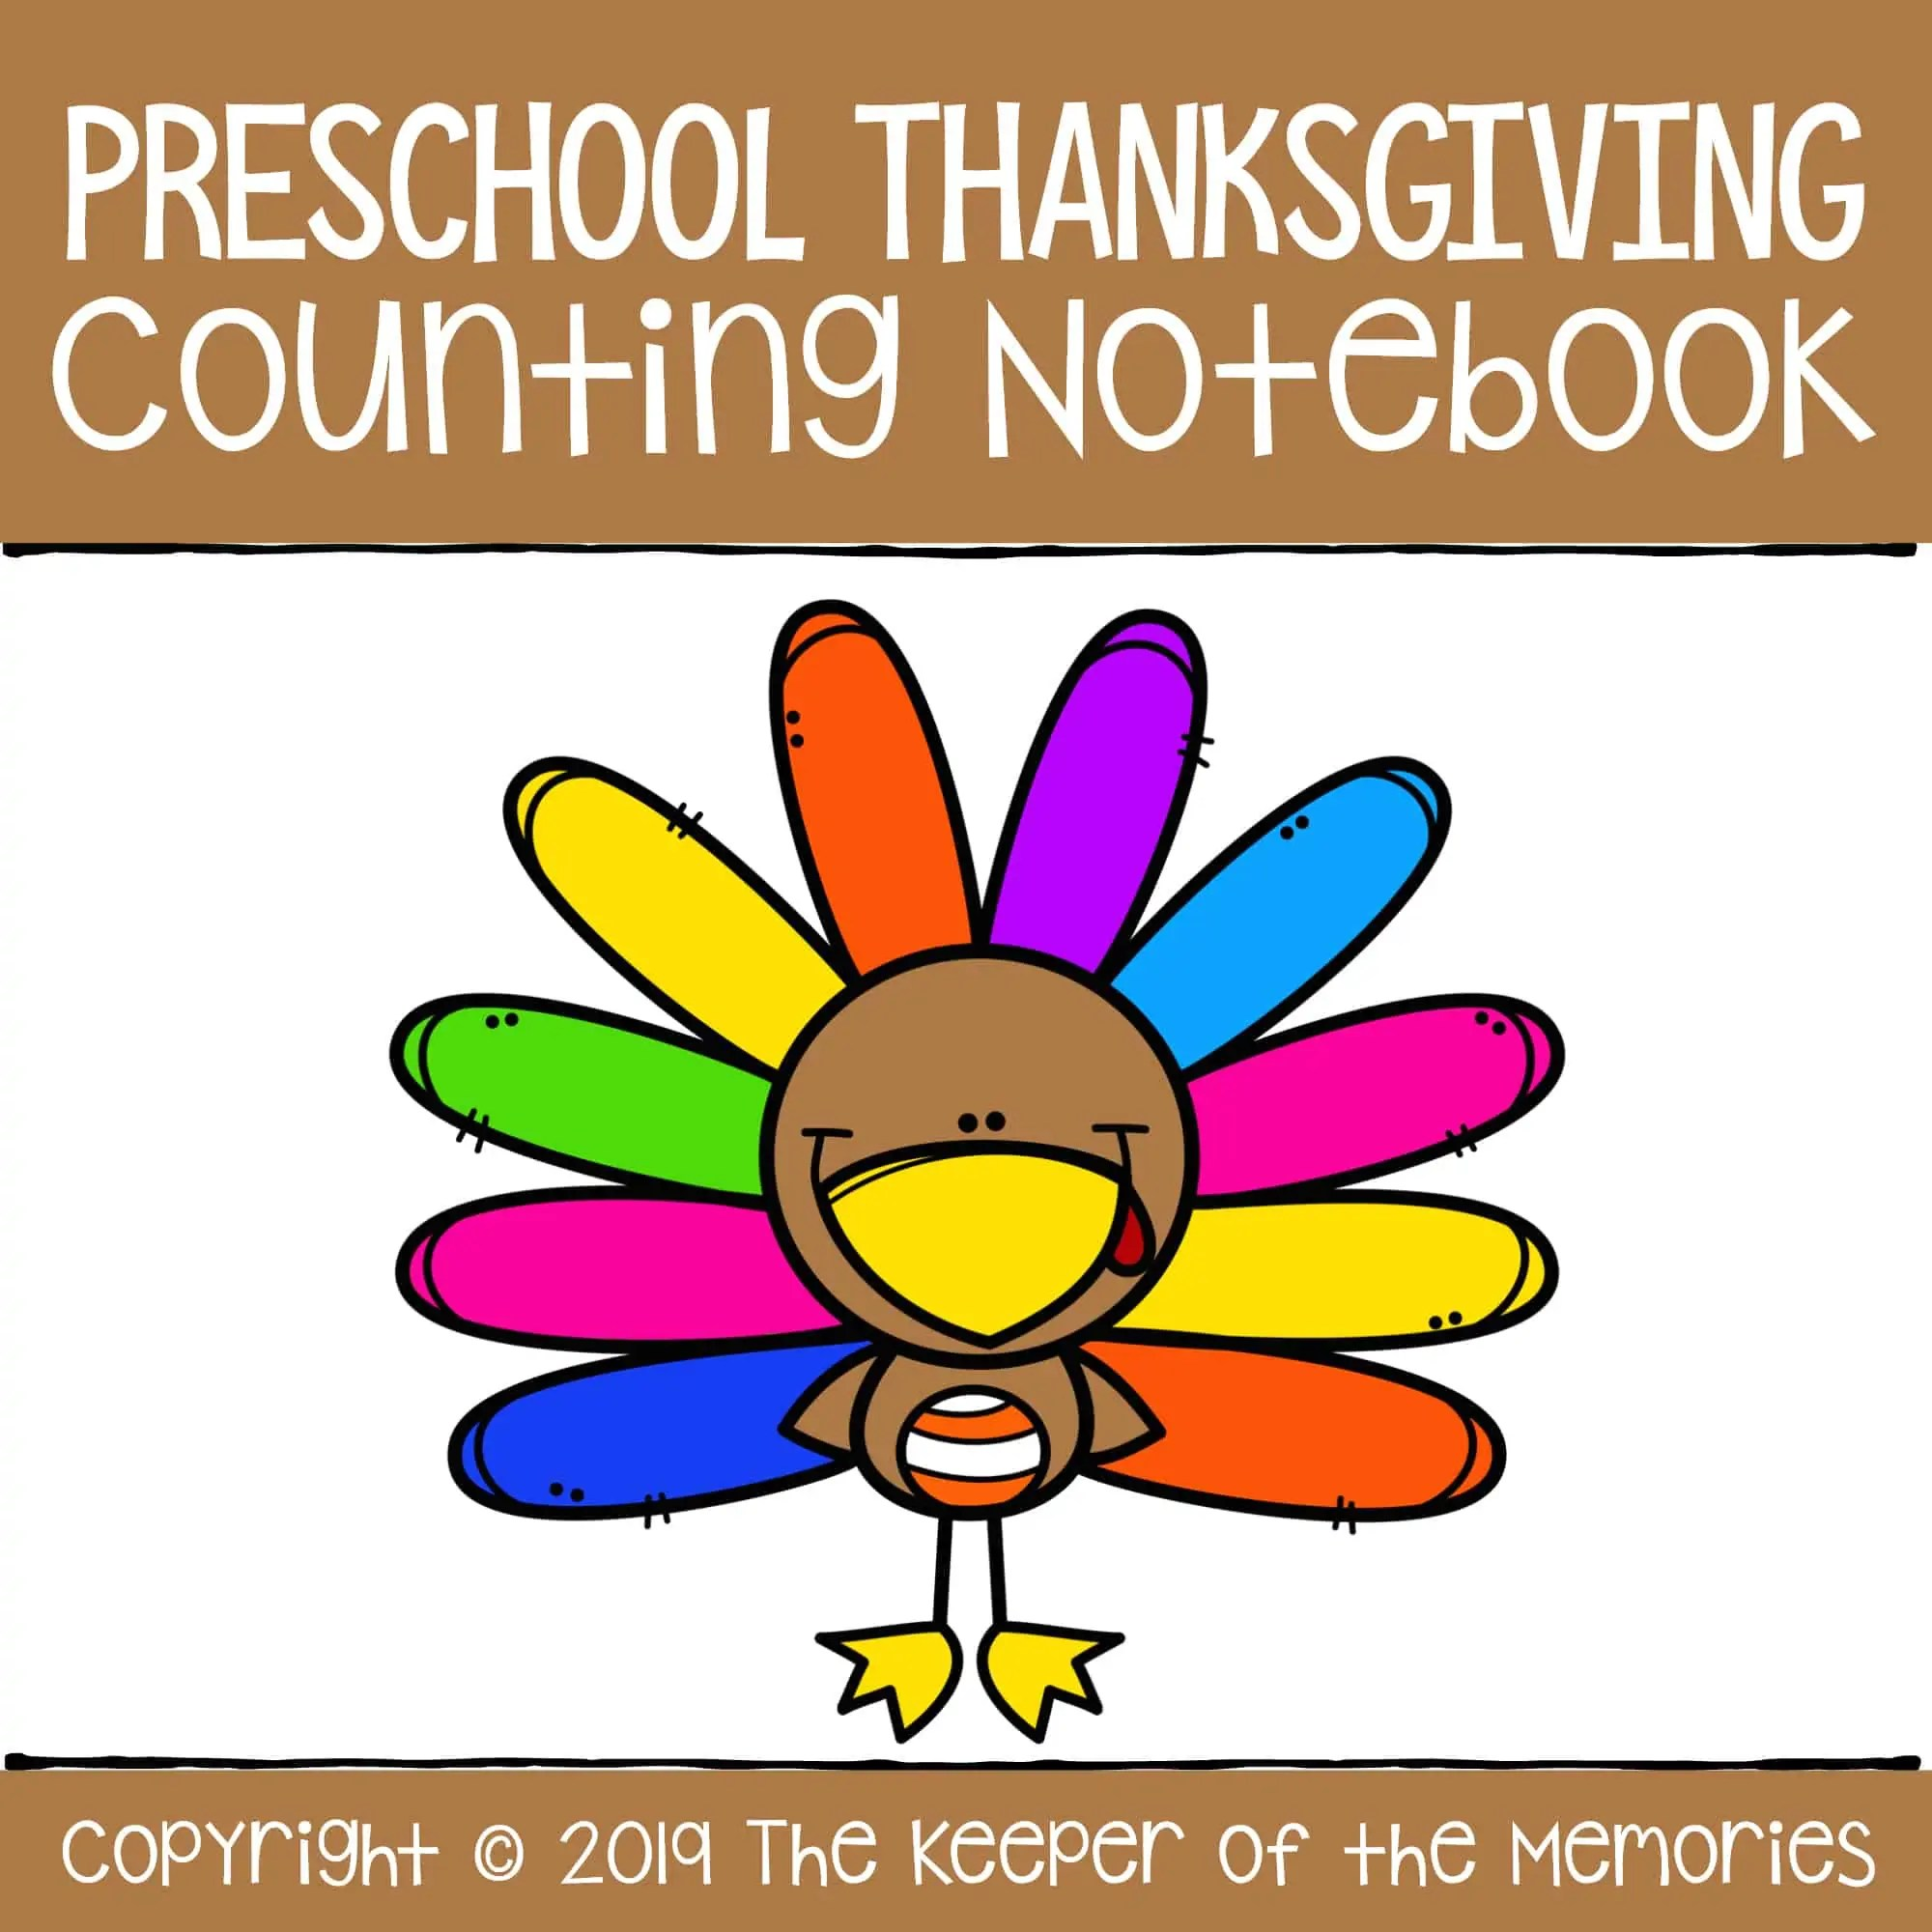 Preschool Thanksgiving Counting Notebook Number Worksheets